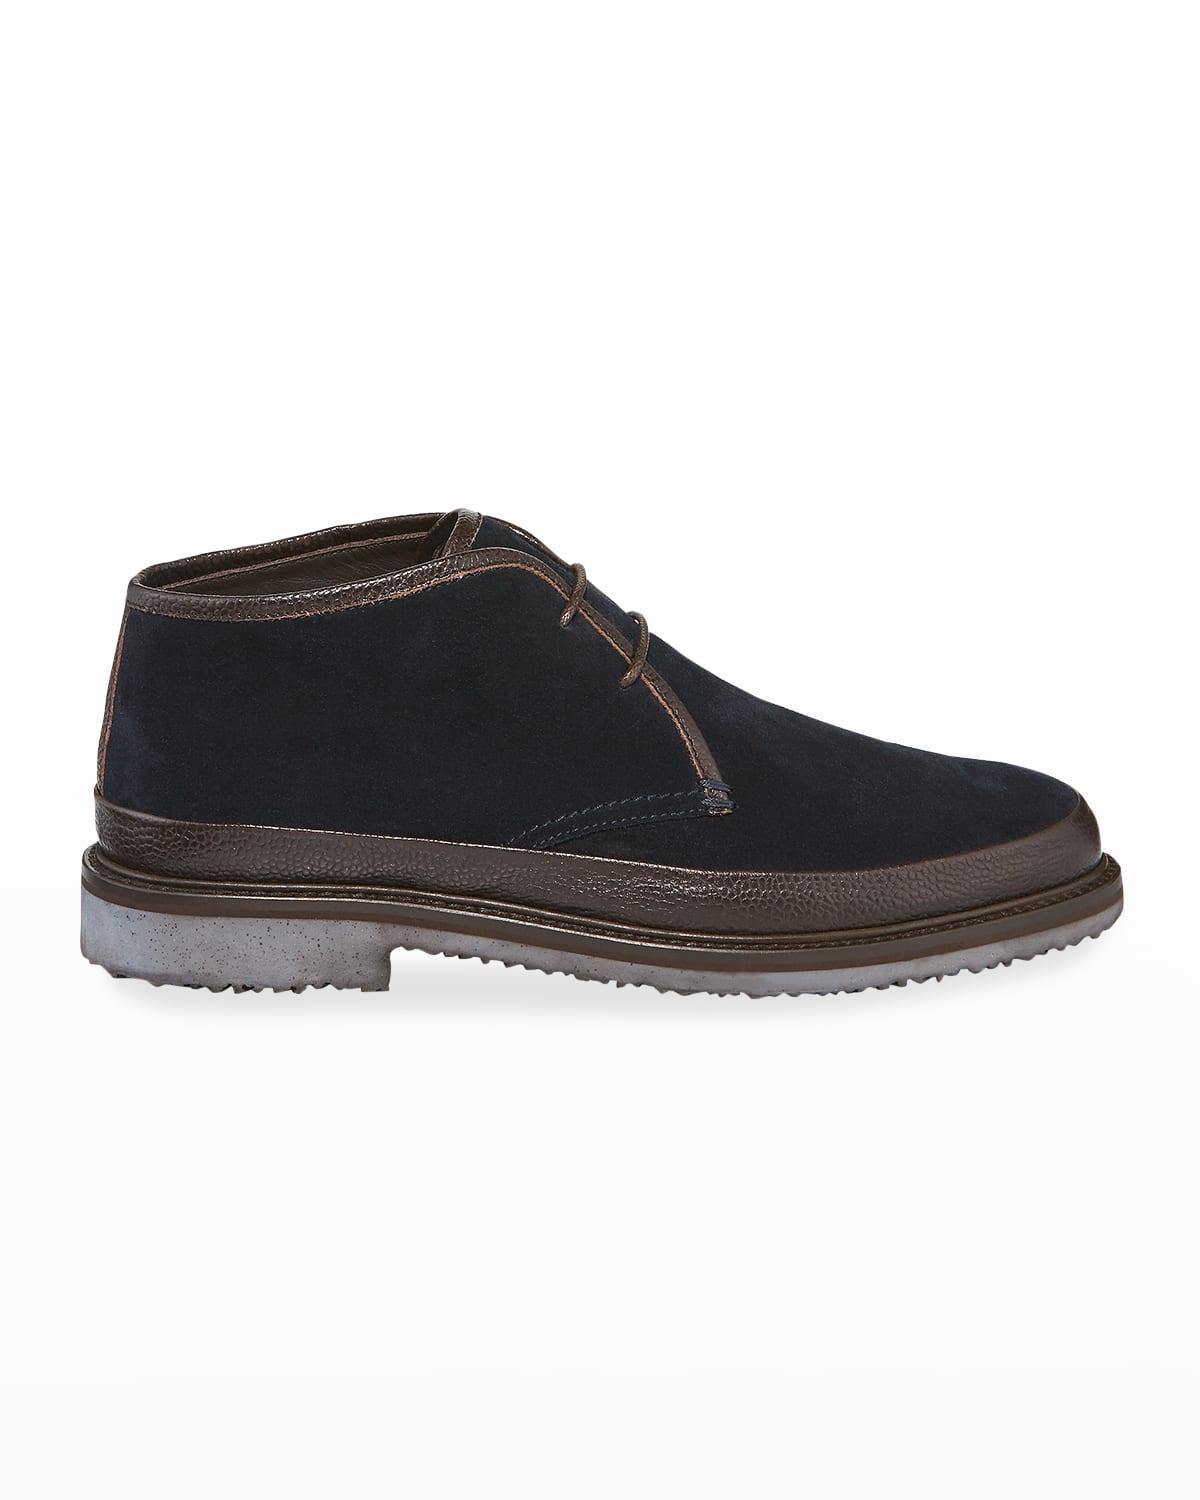 Men's Trivero Suede Chukka Boots with Mud Guard